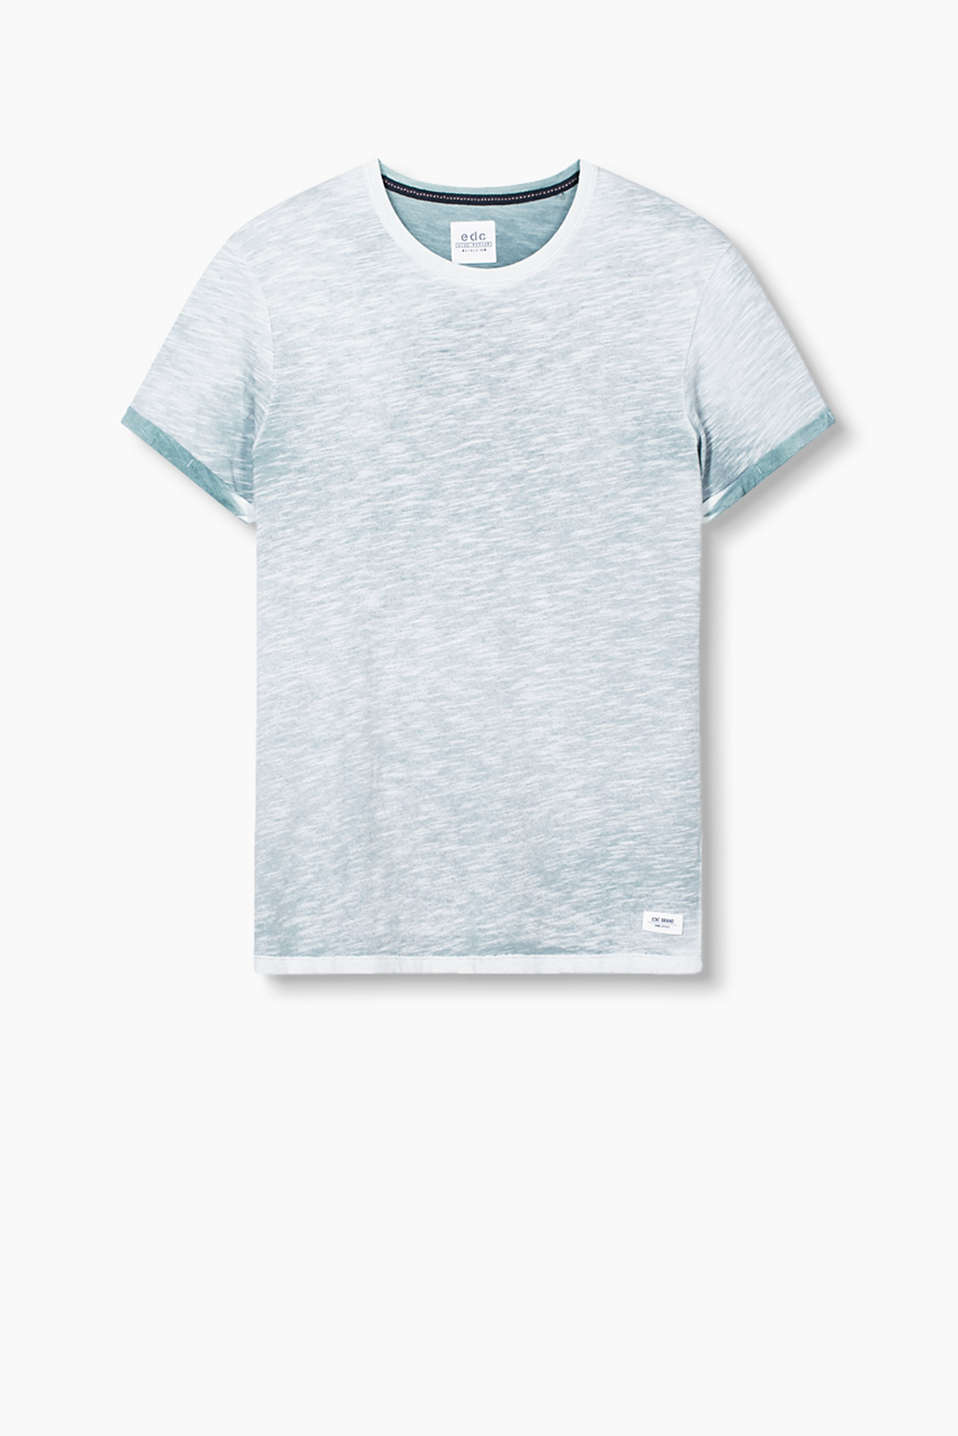 En coton mélangé finement chiné : le t-shirt à encolure ronde